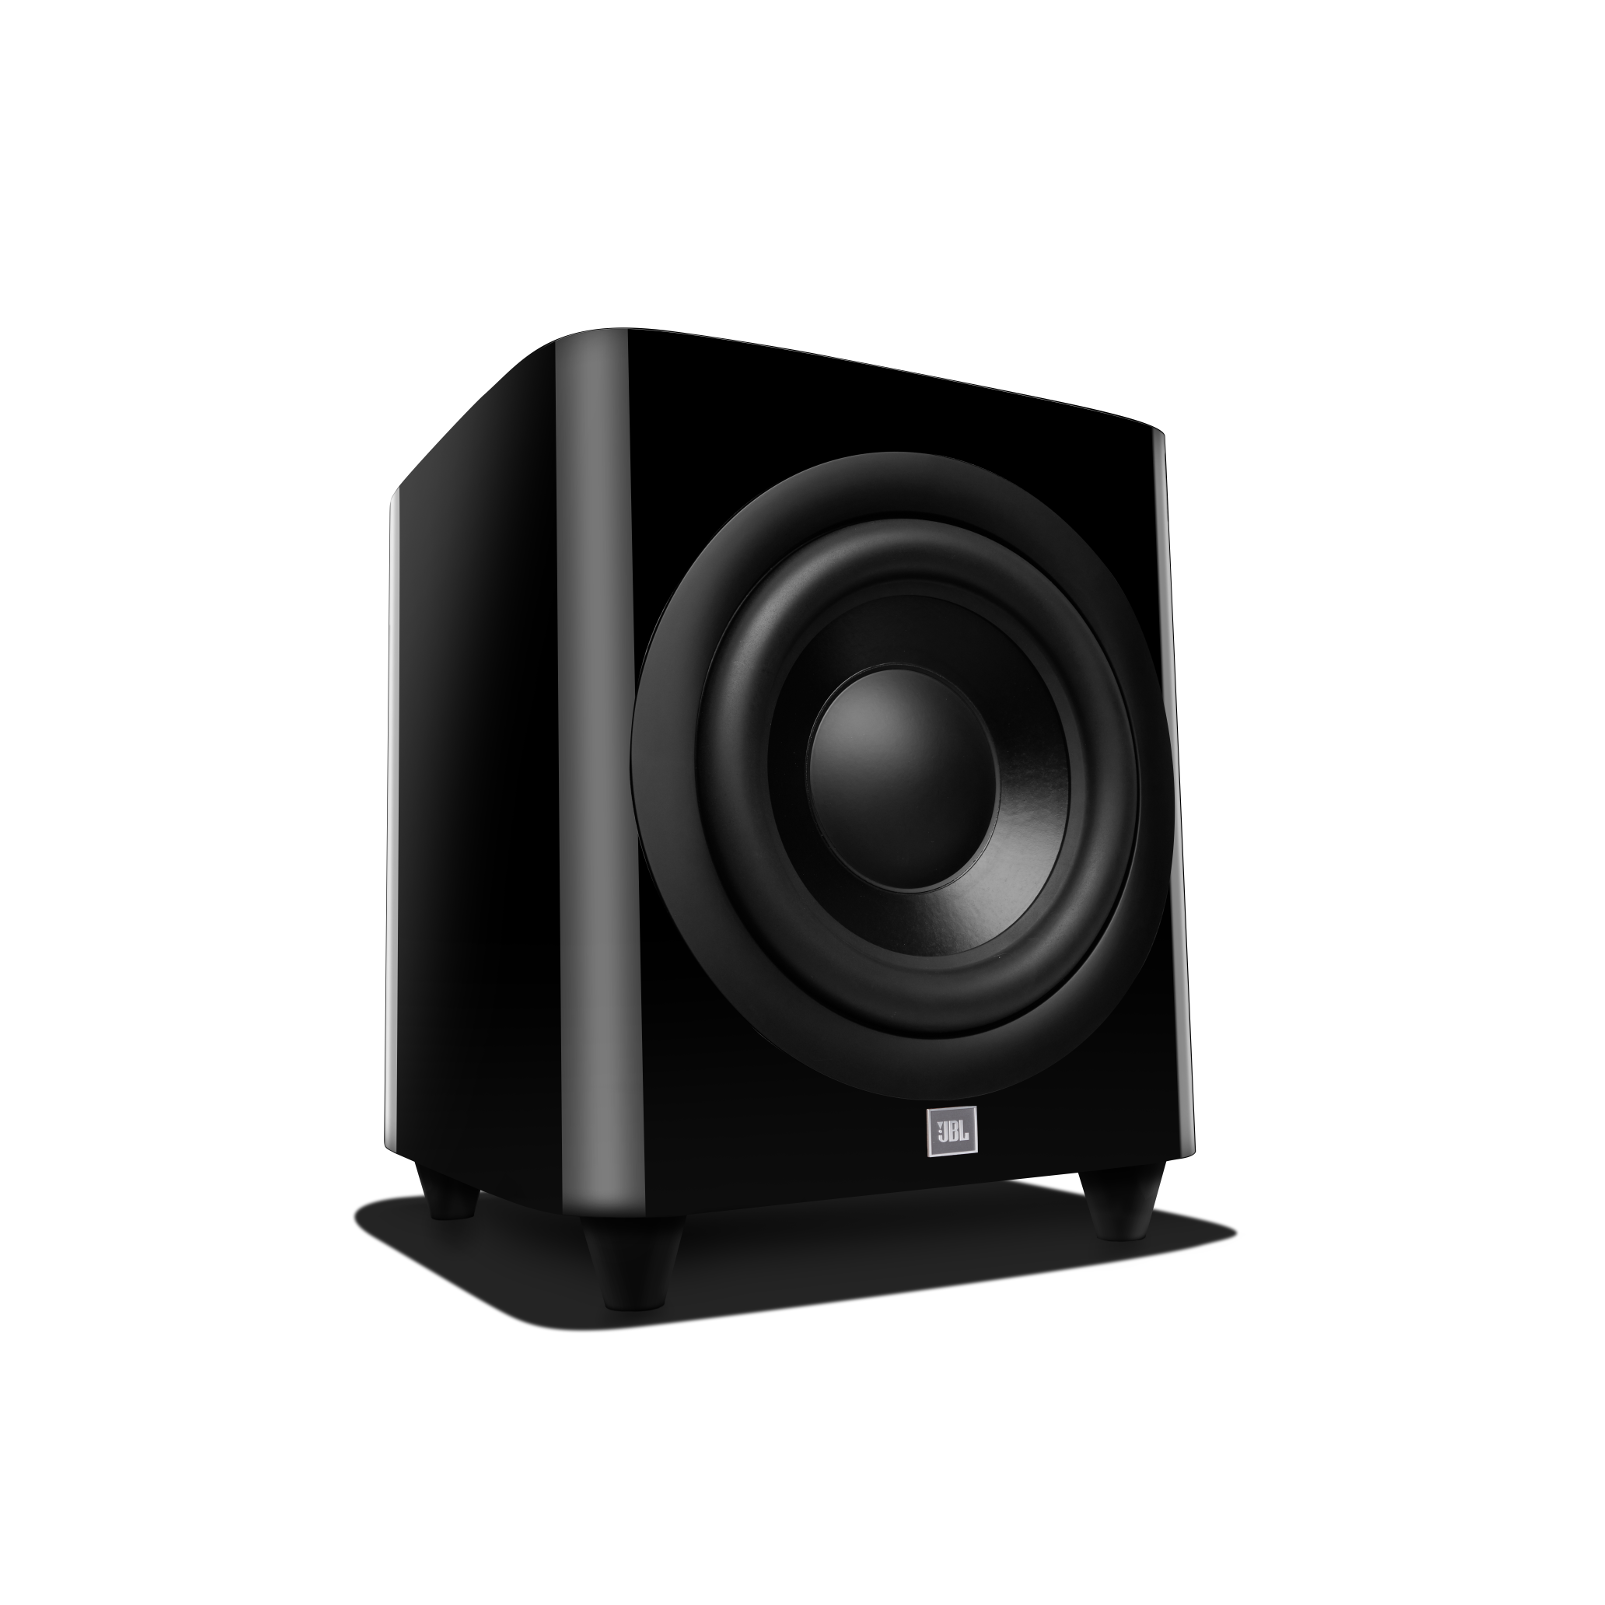 HDI-1200P - Black Gloss - 12-inch (300mm) 1000W Powered Subwoofer - Front